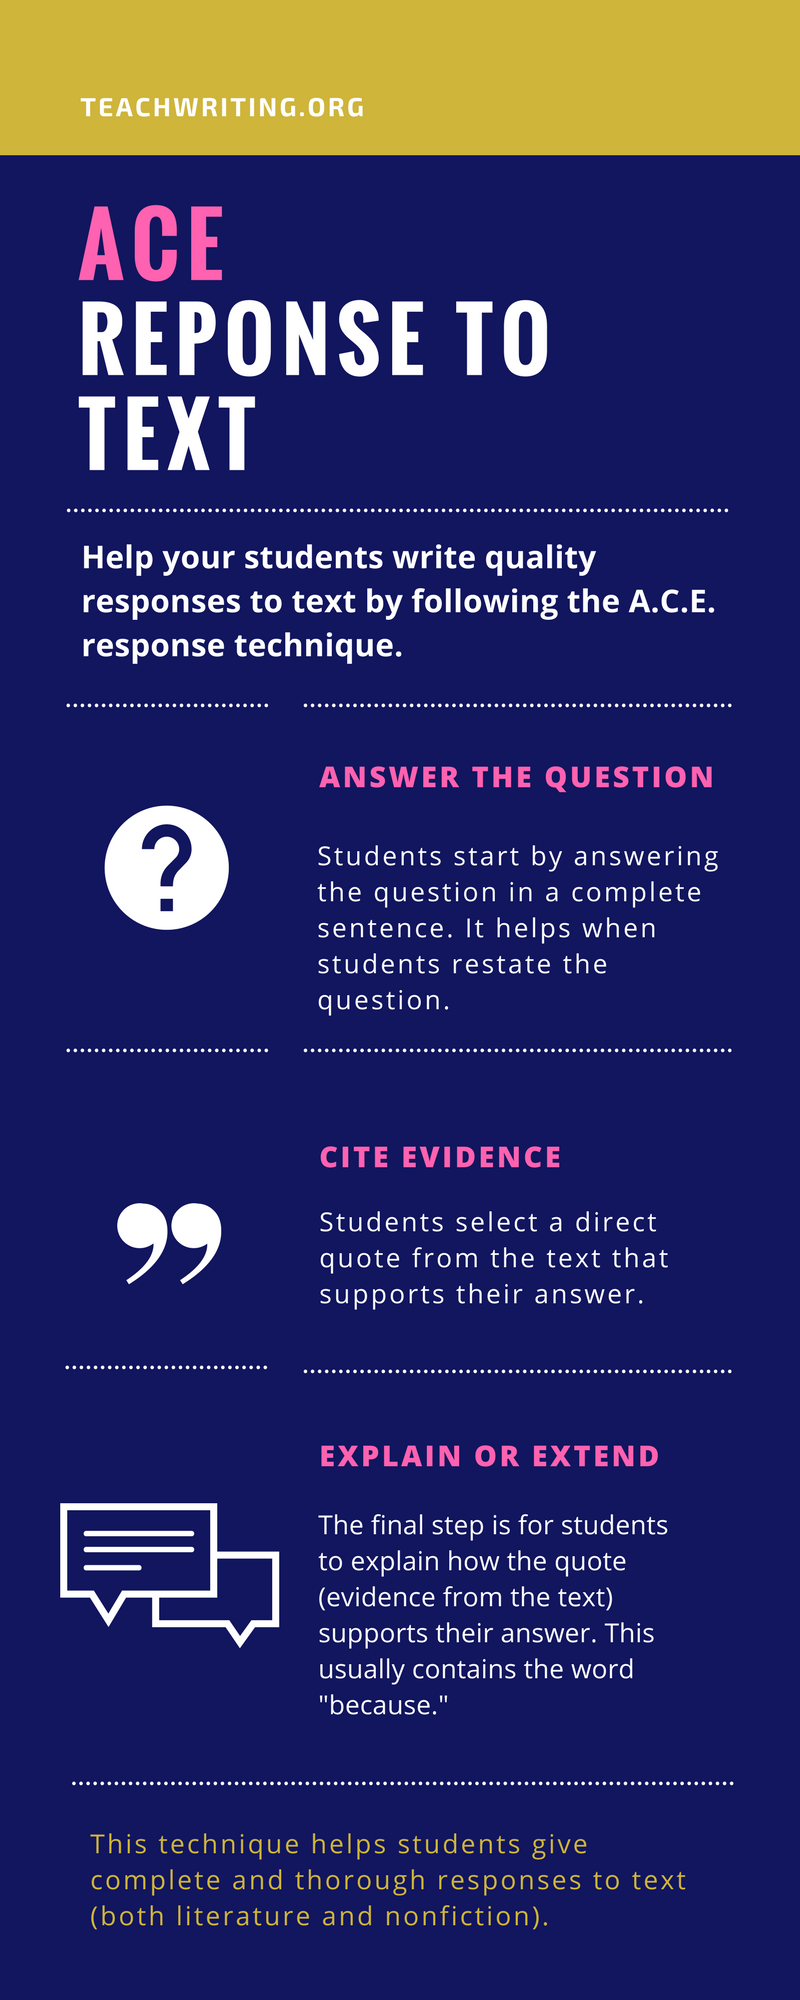 Help Your Students A.C.E. Response to Text Writing — TeachWriting.org